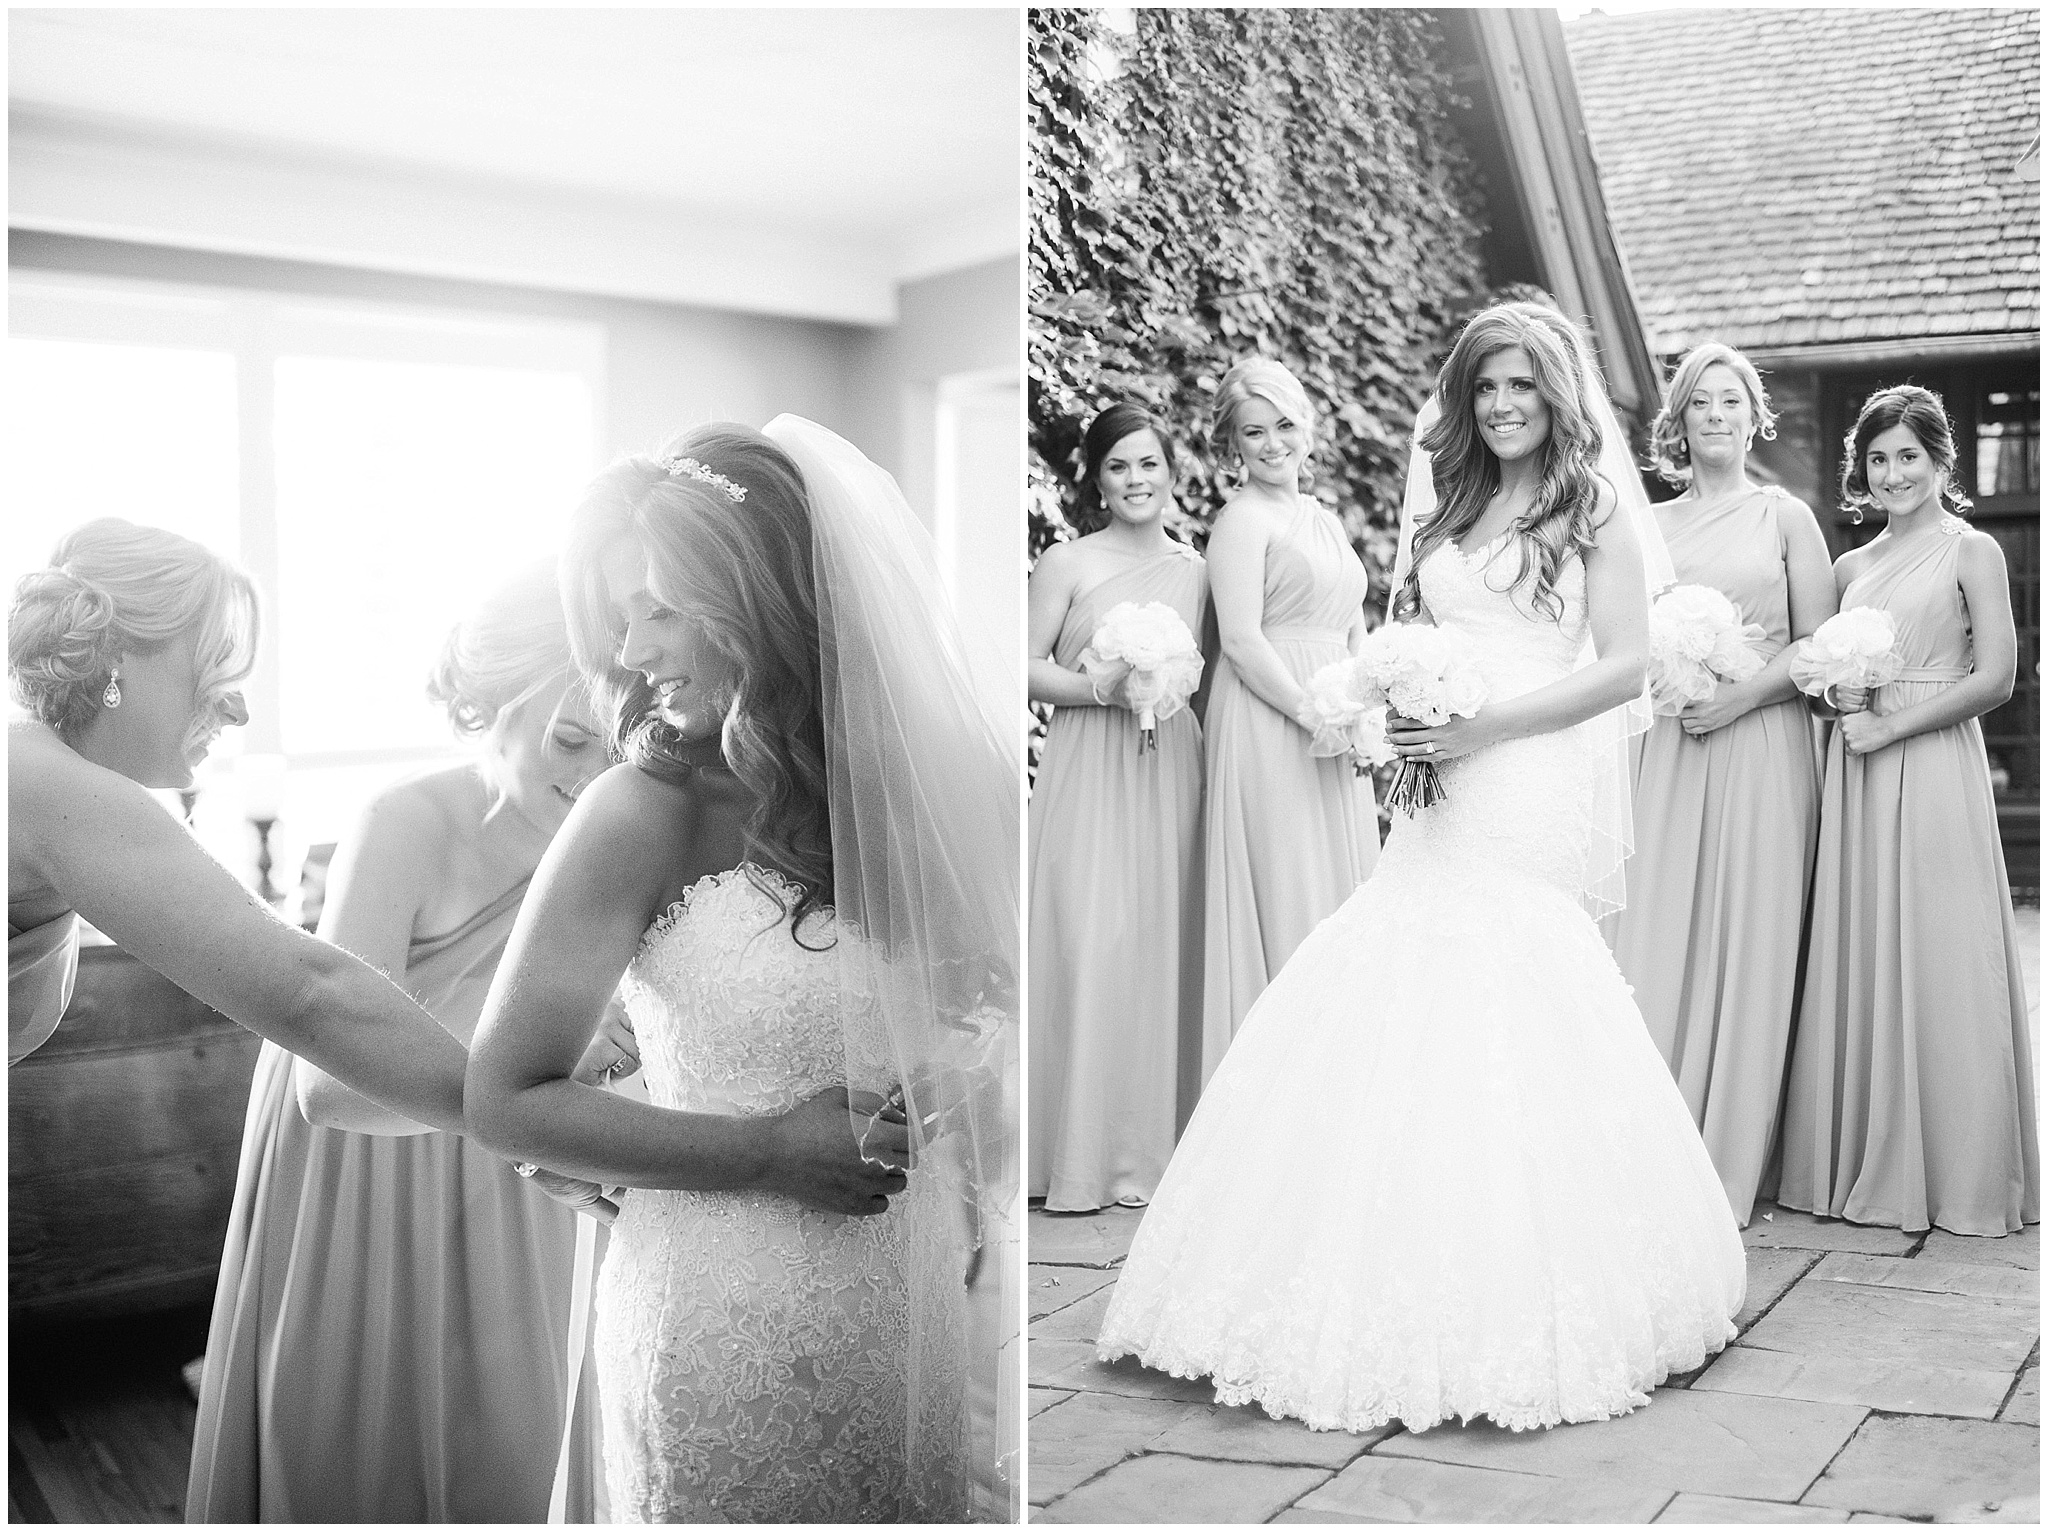 Bride in a Maggie Sottero gown photographed by Jenn Kavanagh Photography